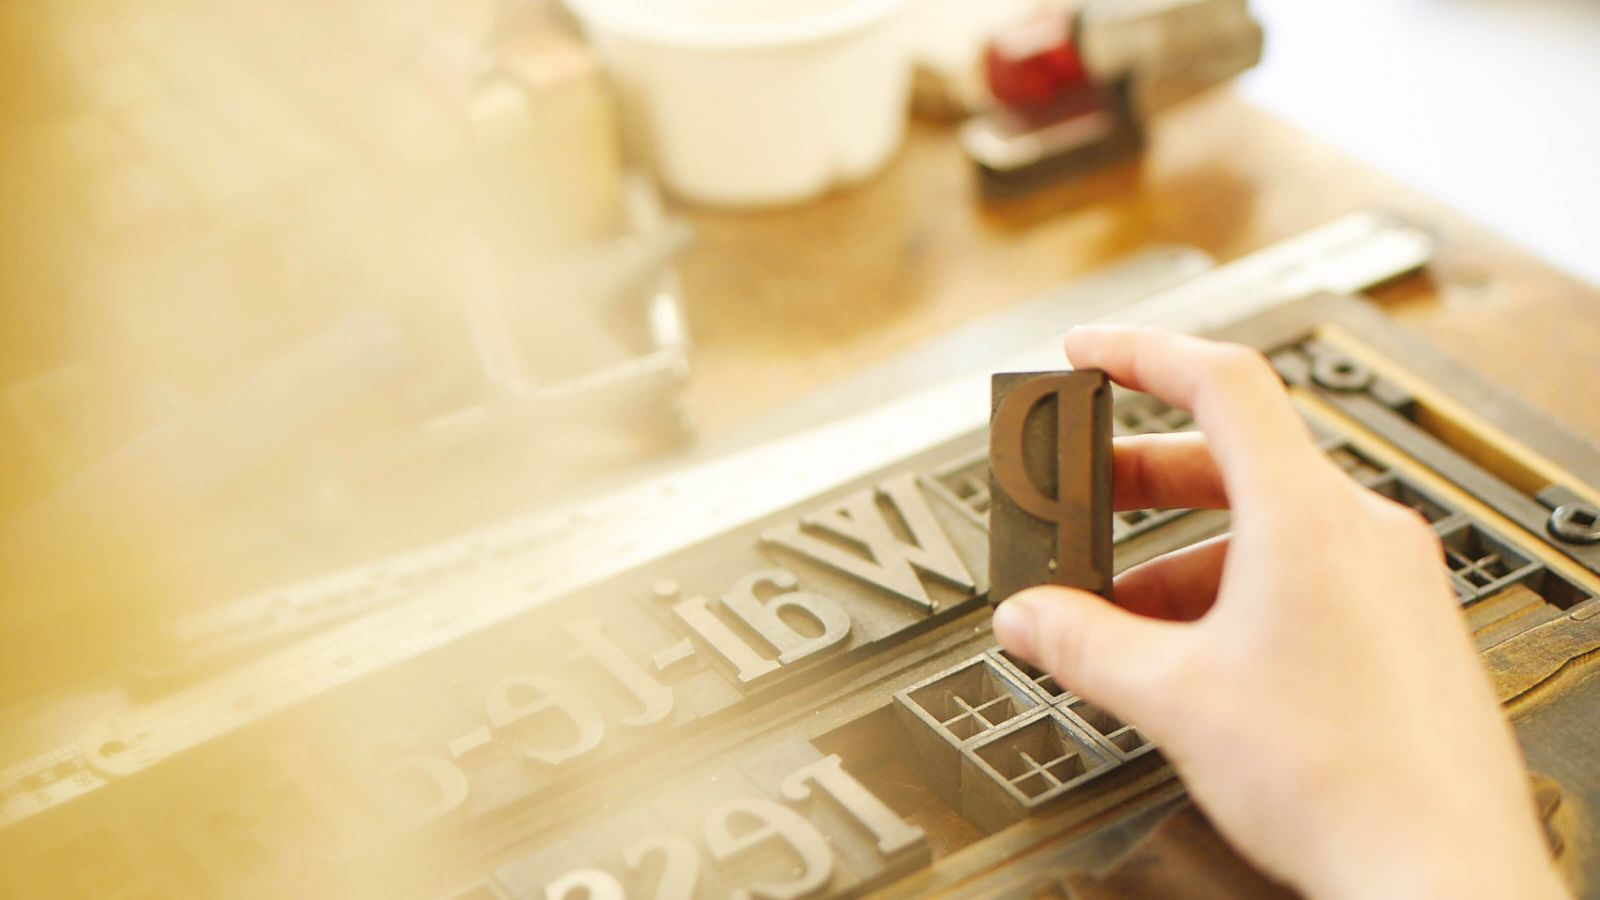 A close-up of printing press block letters on a table.